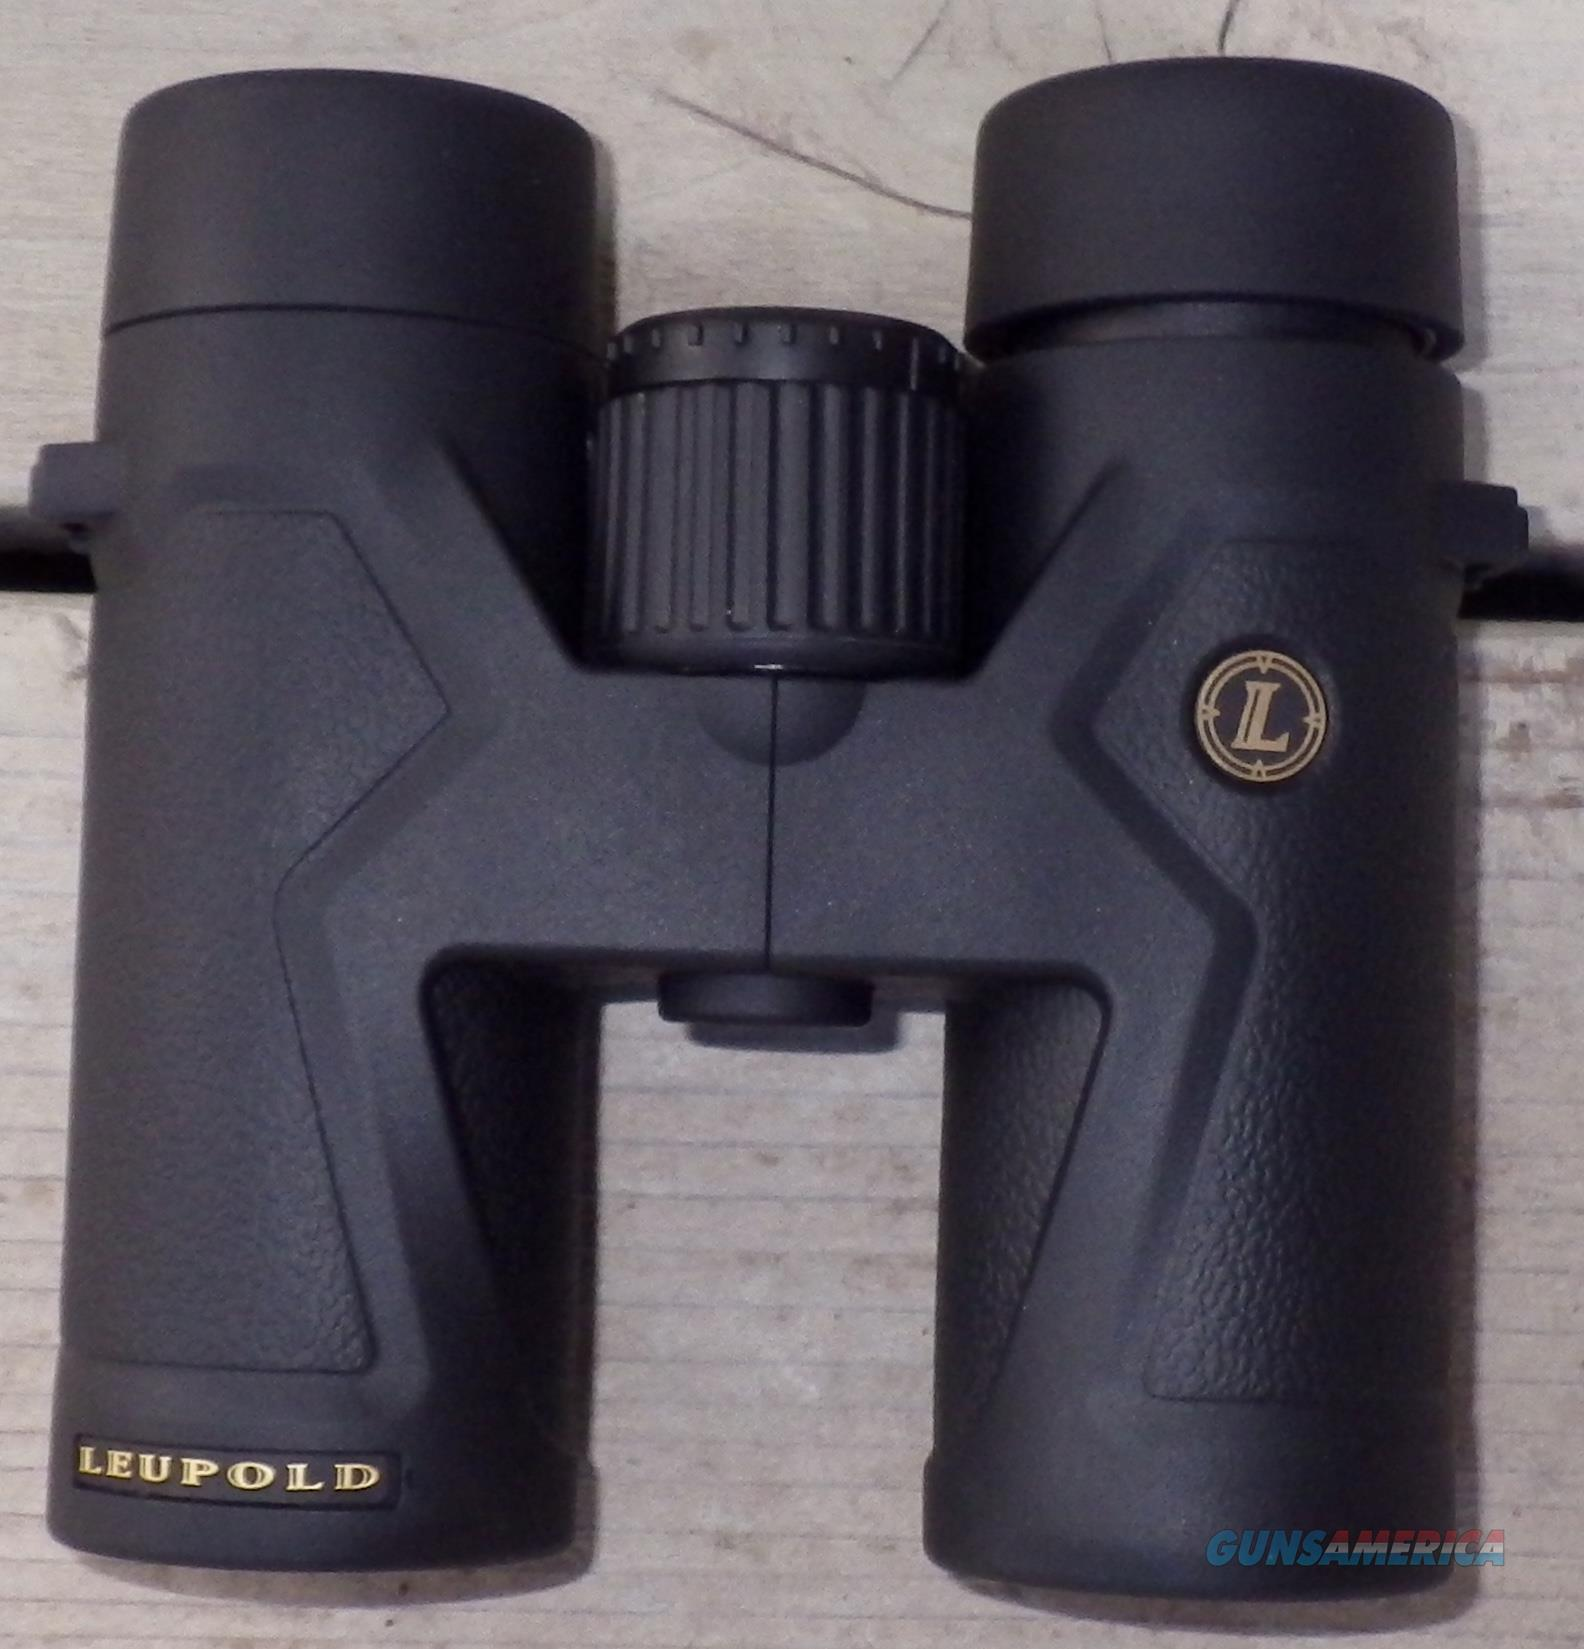 leupold pro guide bx4 10x50 for sale